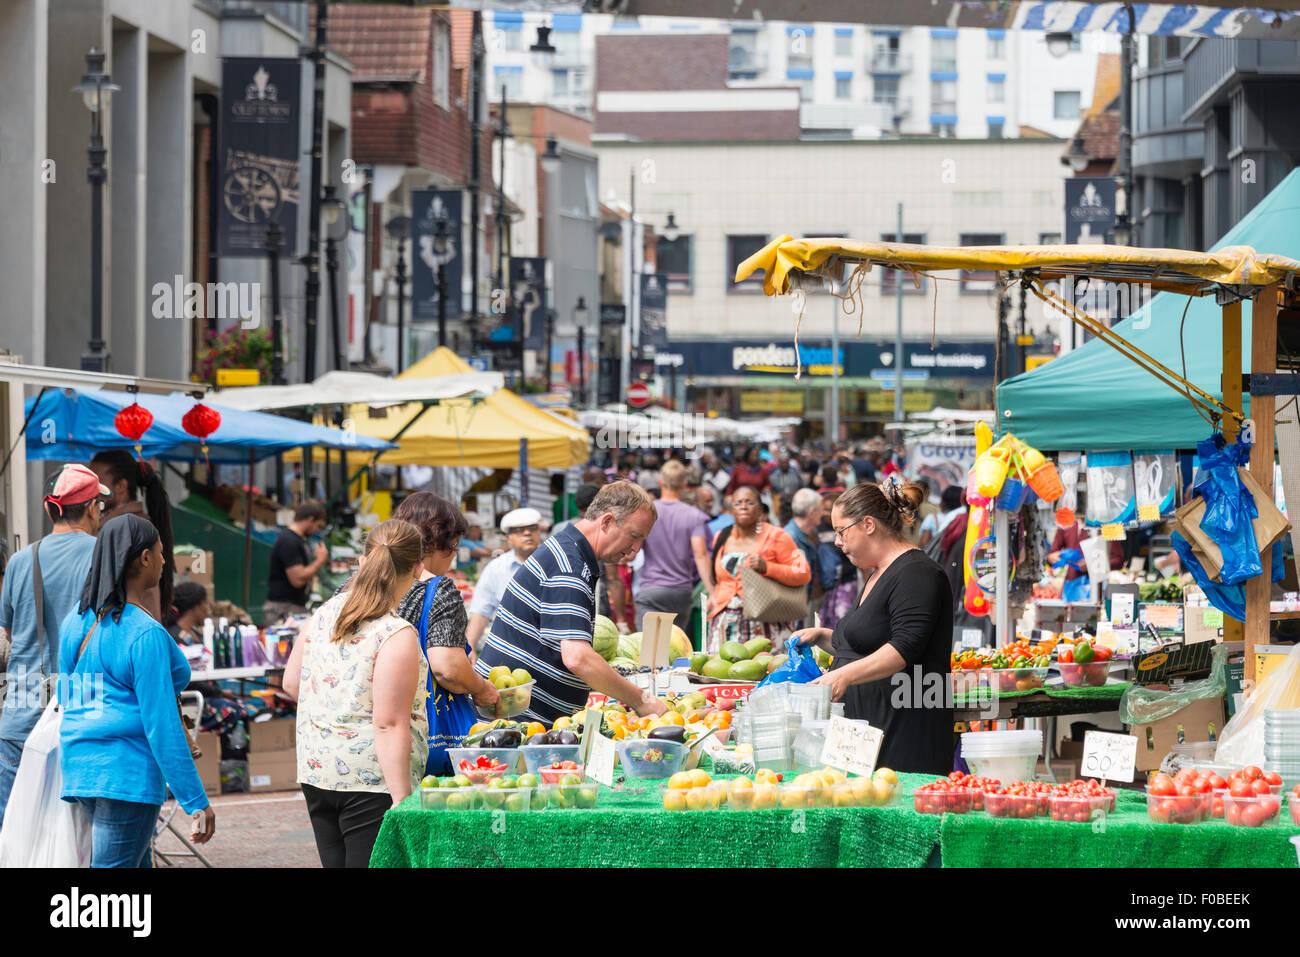 Surrey Street Market stall, Surrey Street, Croydon, London Borough of Croydon, Greater London, England, United Kingdom - Stock Image